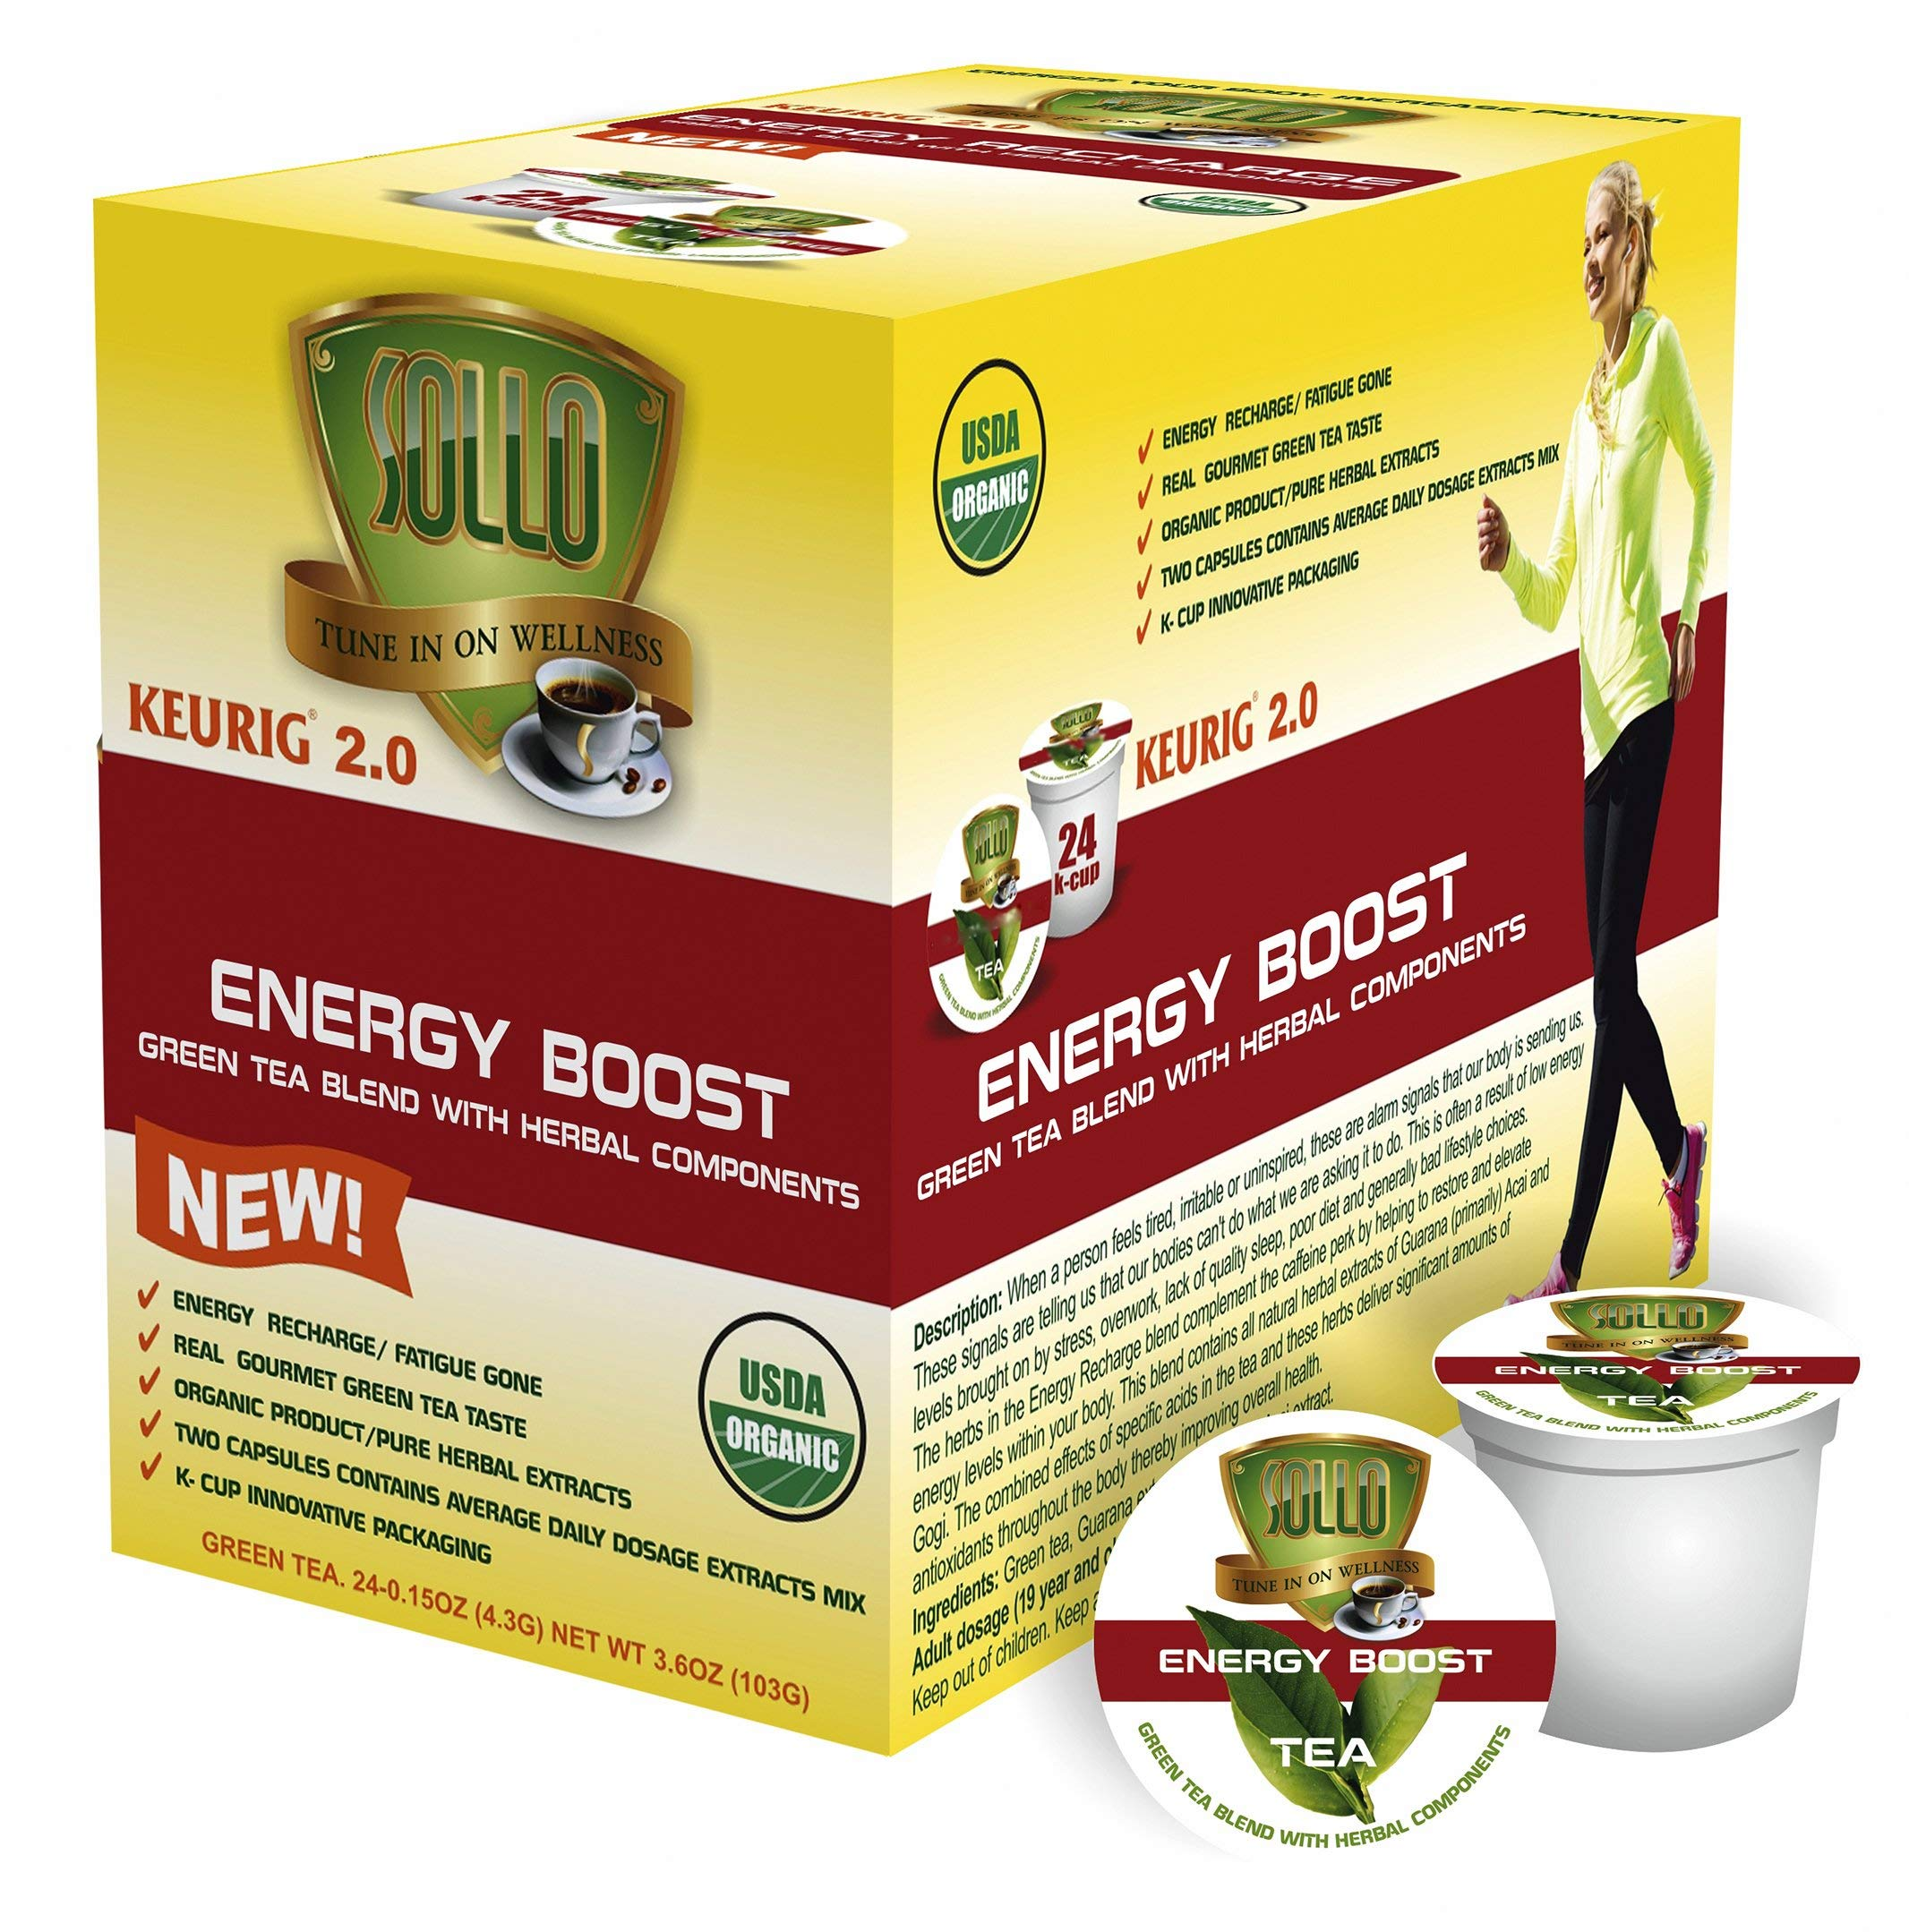 SOLLO Organic Green Tea Pods Compatible With 2.0 K-Cup Keurig Brewers, Energy Boost Organic Green Tea With Herbal Extracts, 24 Count per Box, Organic by USDA, Wellness Functional Tea